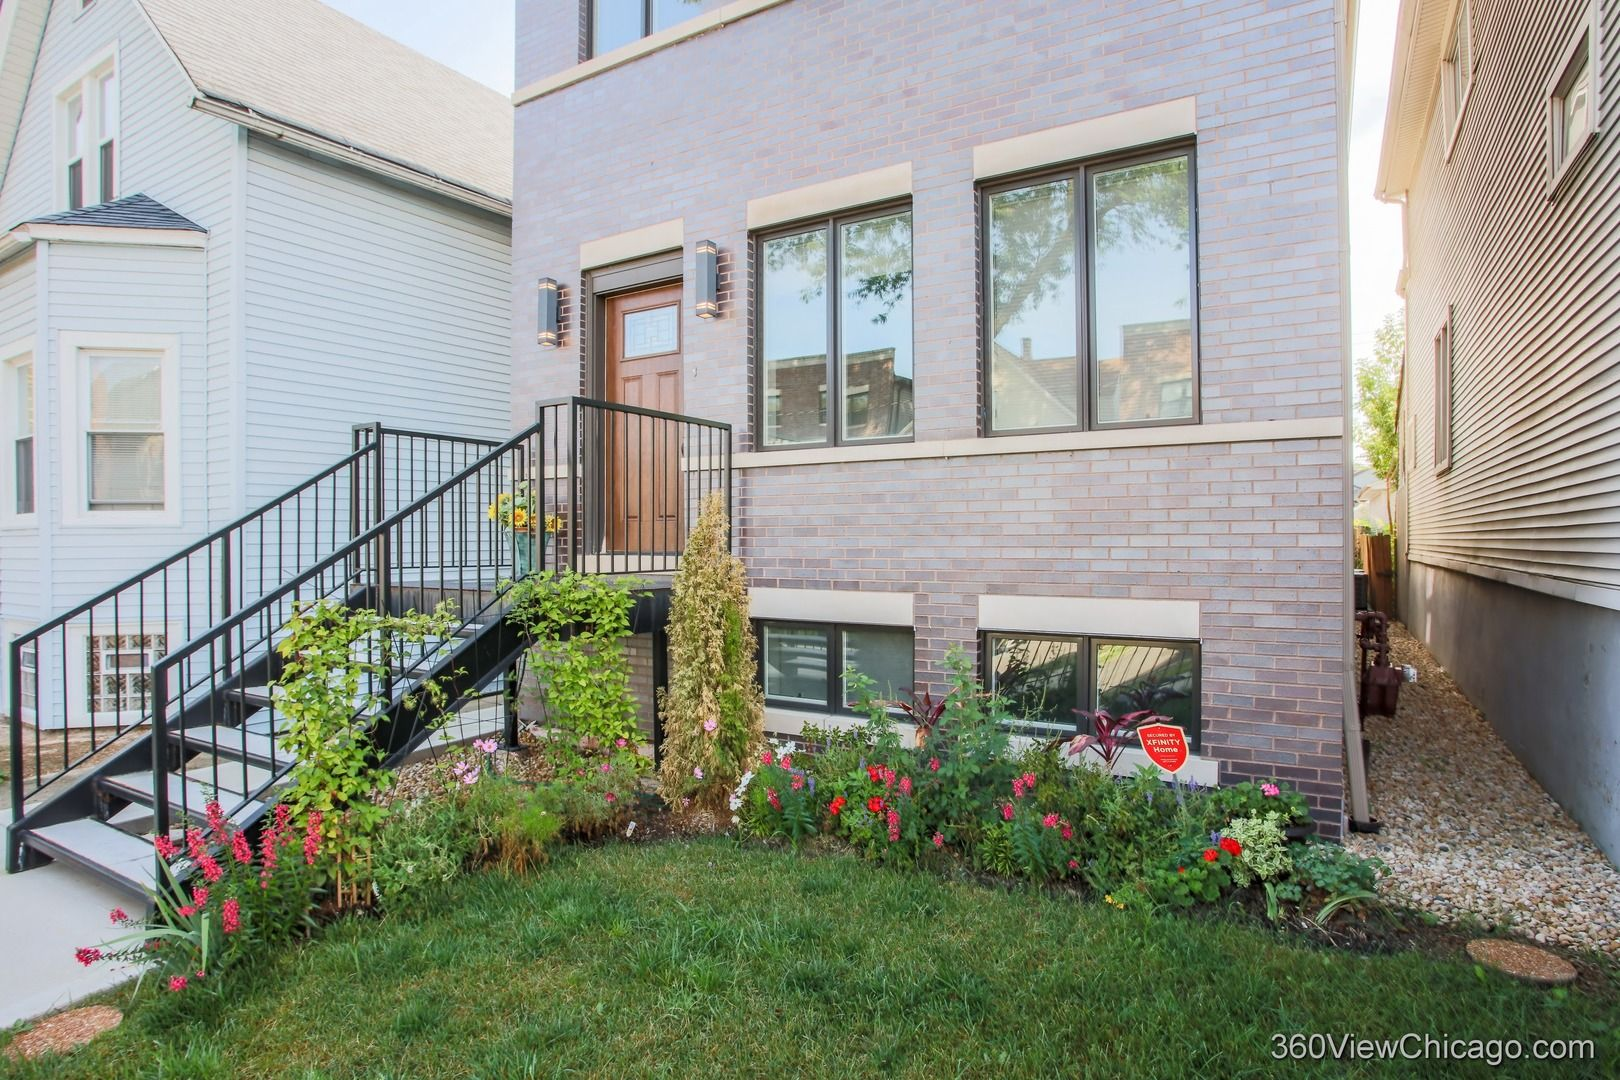 Photo 3: Photos: 1733 Troy Street in Chicago: CHI - Humboldt Park Residential for sale ()  : MLS®# 10911567